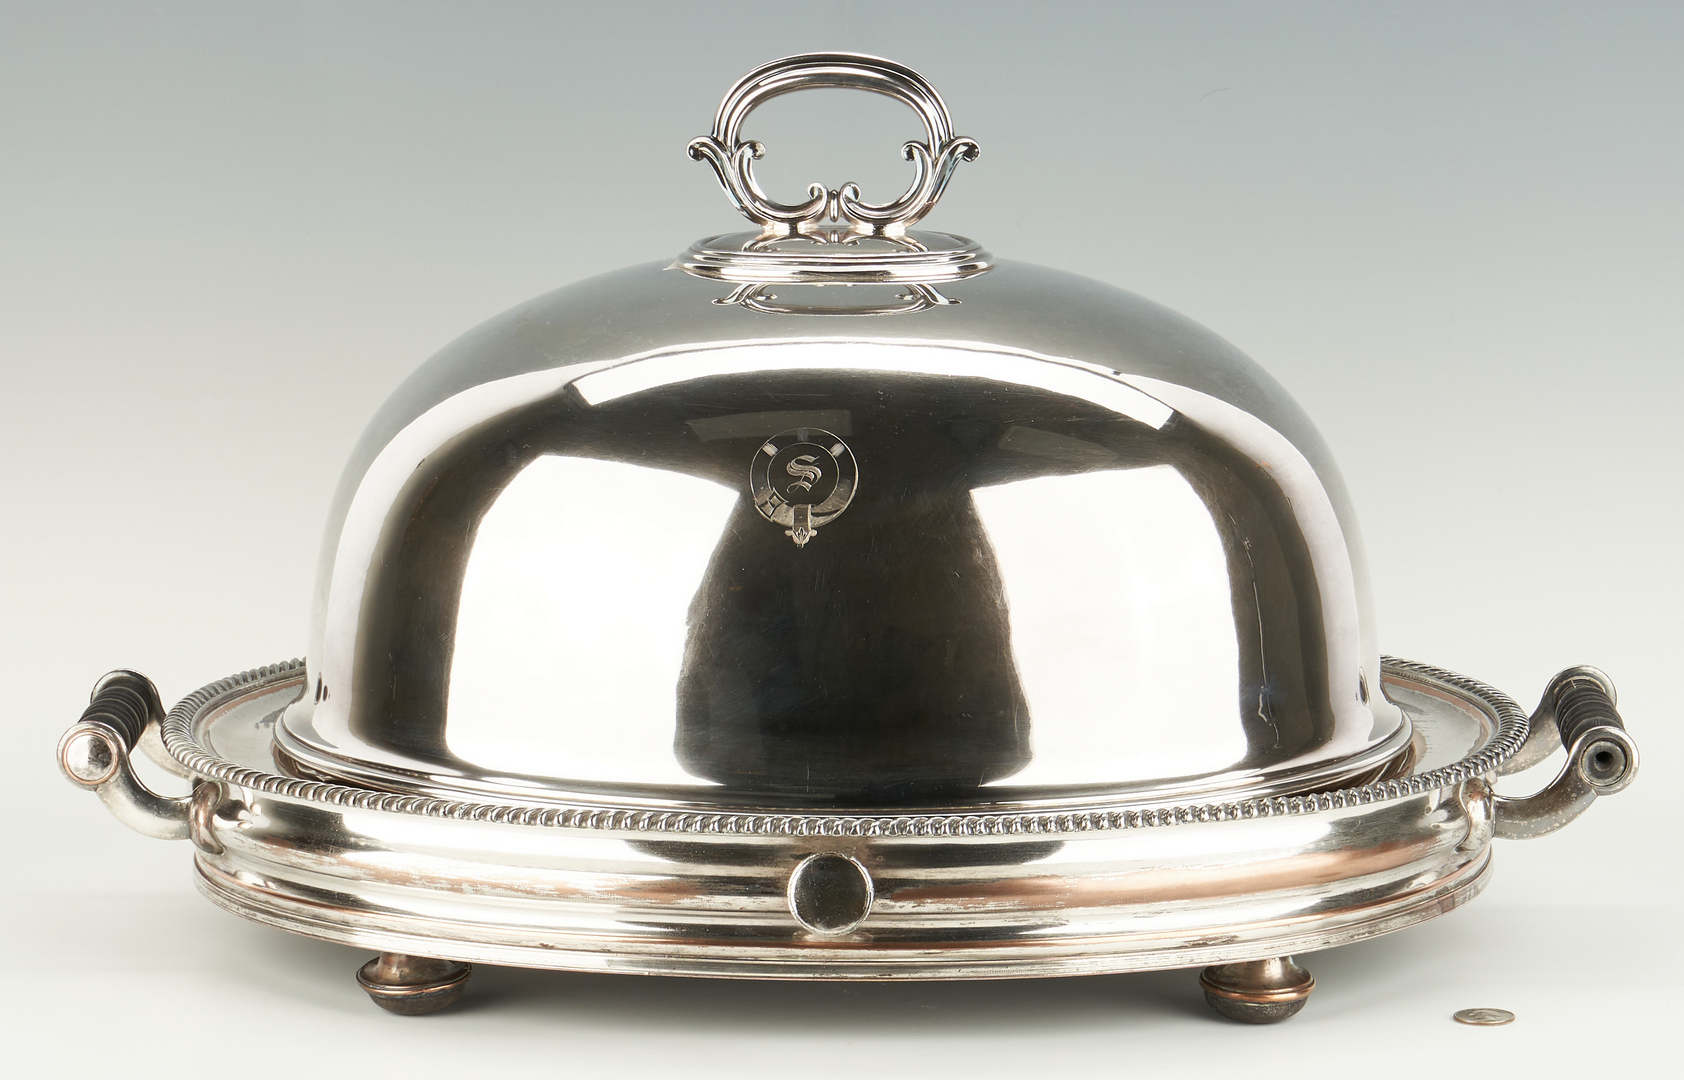 Lot 947: Old Sheffield Plate Warming Stand and Meat Dome